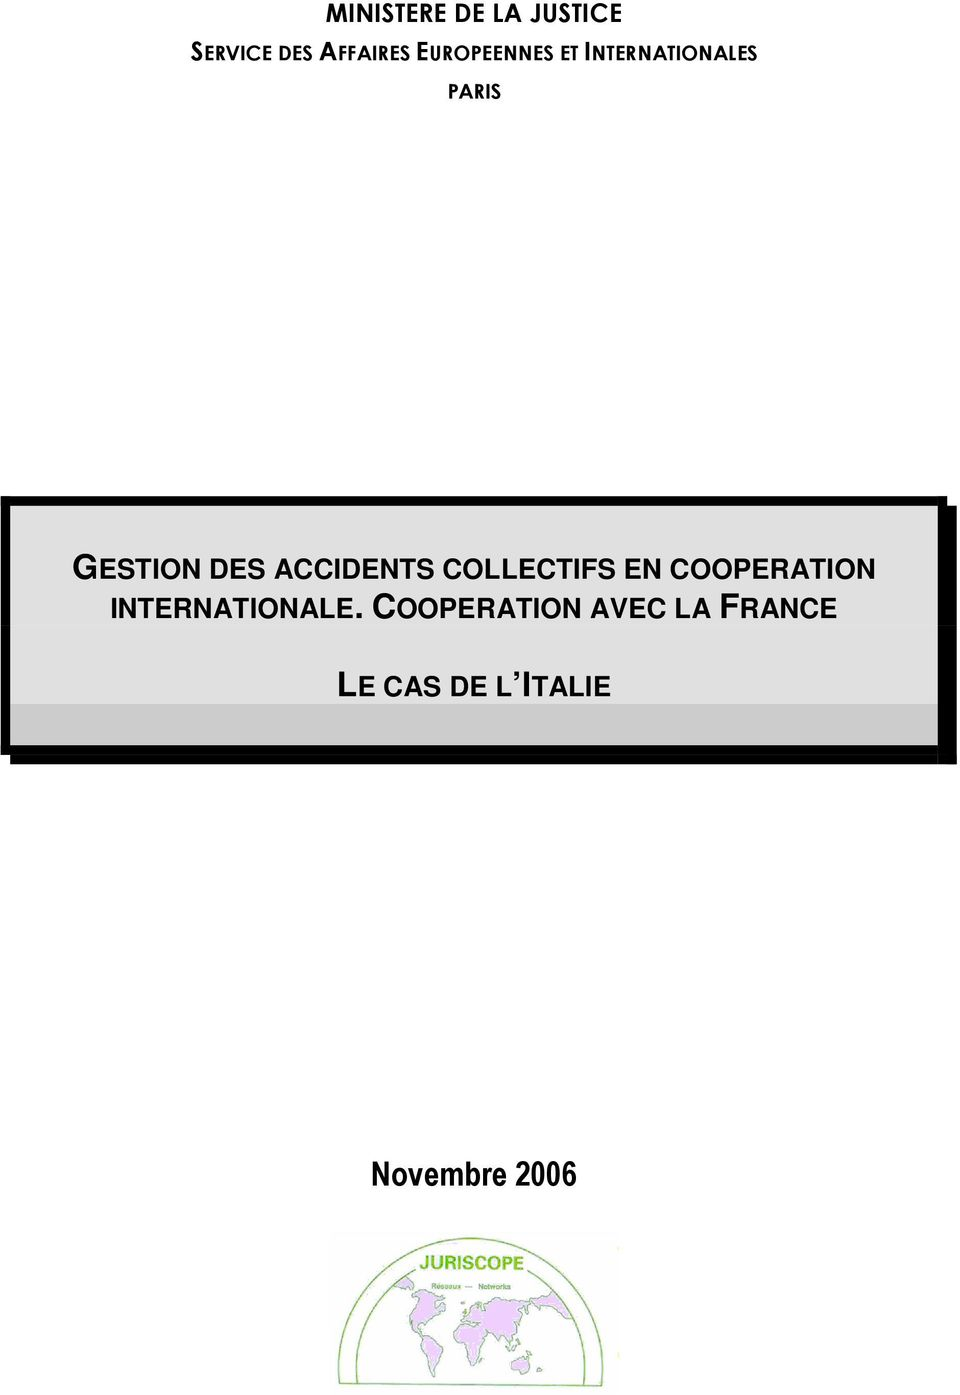 ACCIDENTS COLLECTIFS EN COOPERATION INTERNATIONALE.